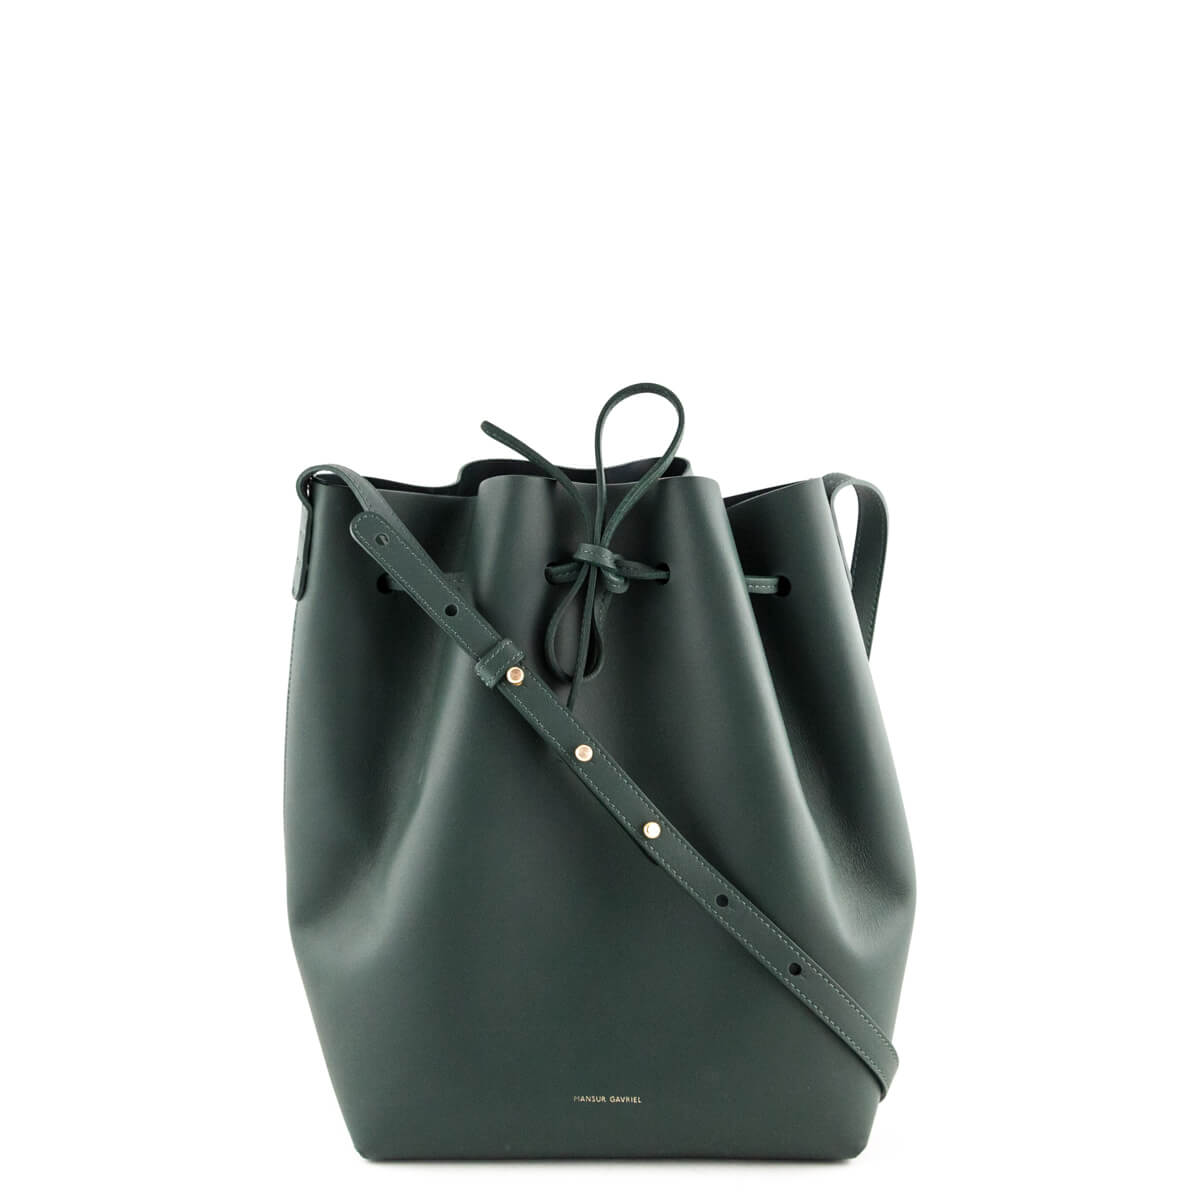 552c7dee8c3f0 Mansur Gavriel Moss Calfskin Large Bucket Bag - LOVE that BAG - Preowned  Authentic Designer Handbags ...